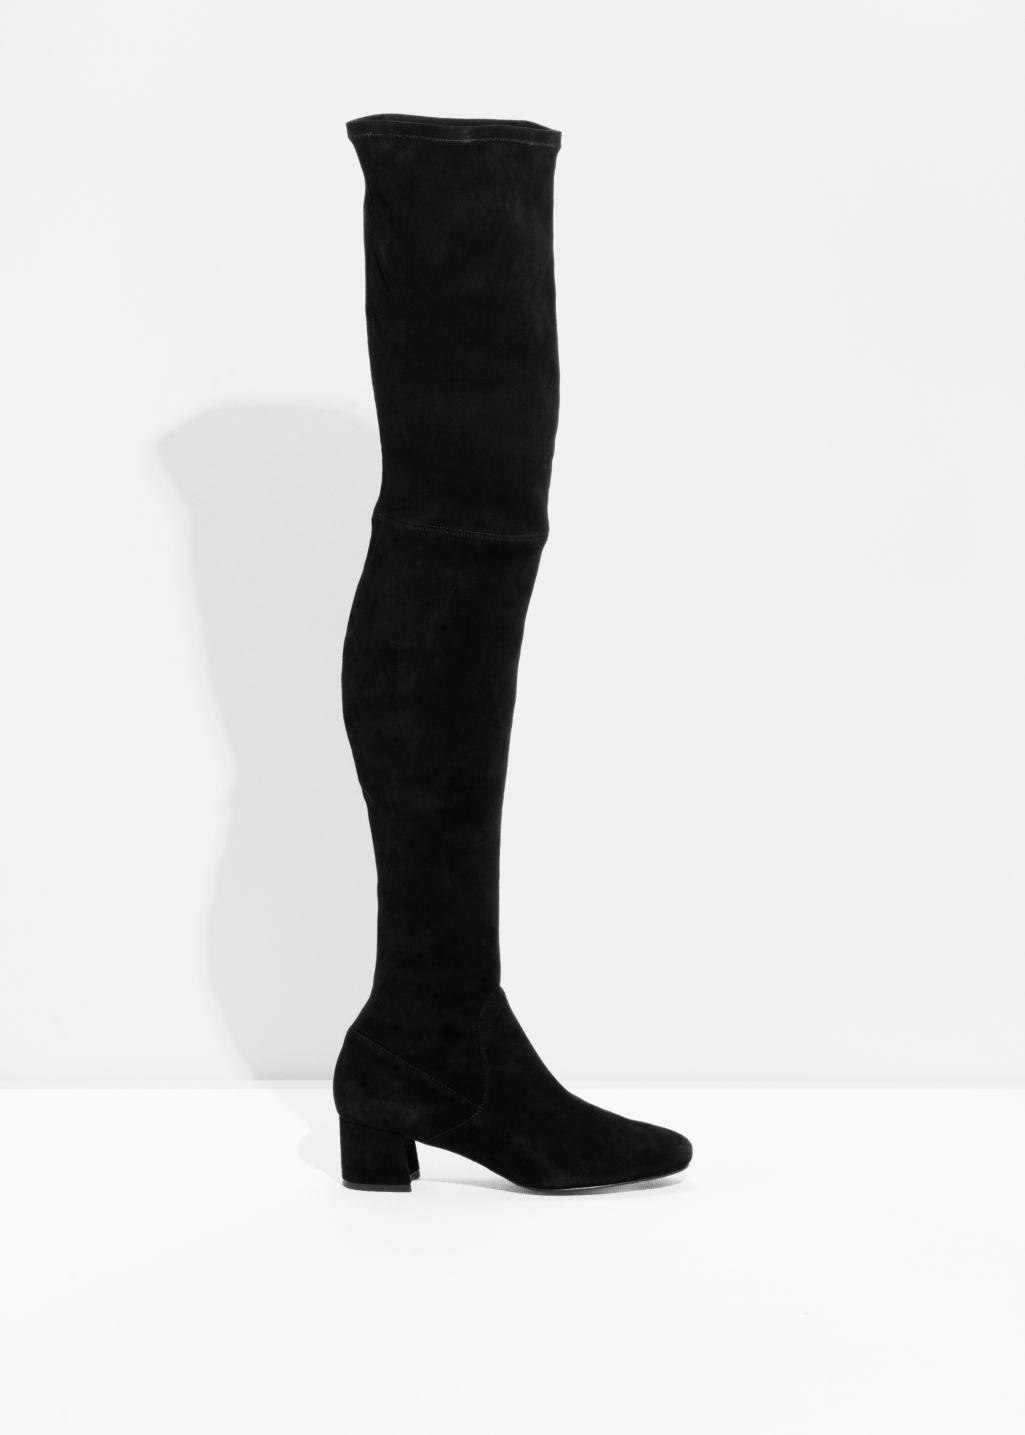 cacc676e03e Lyst -   Other Stories Slim Suede Thigh High Boots in Black - Save 40%